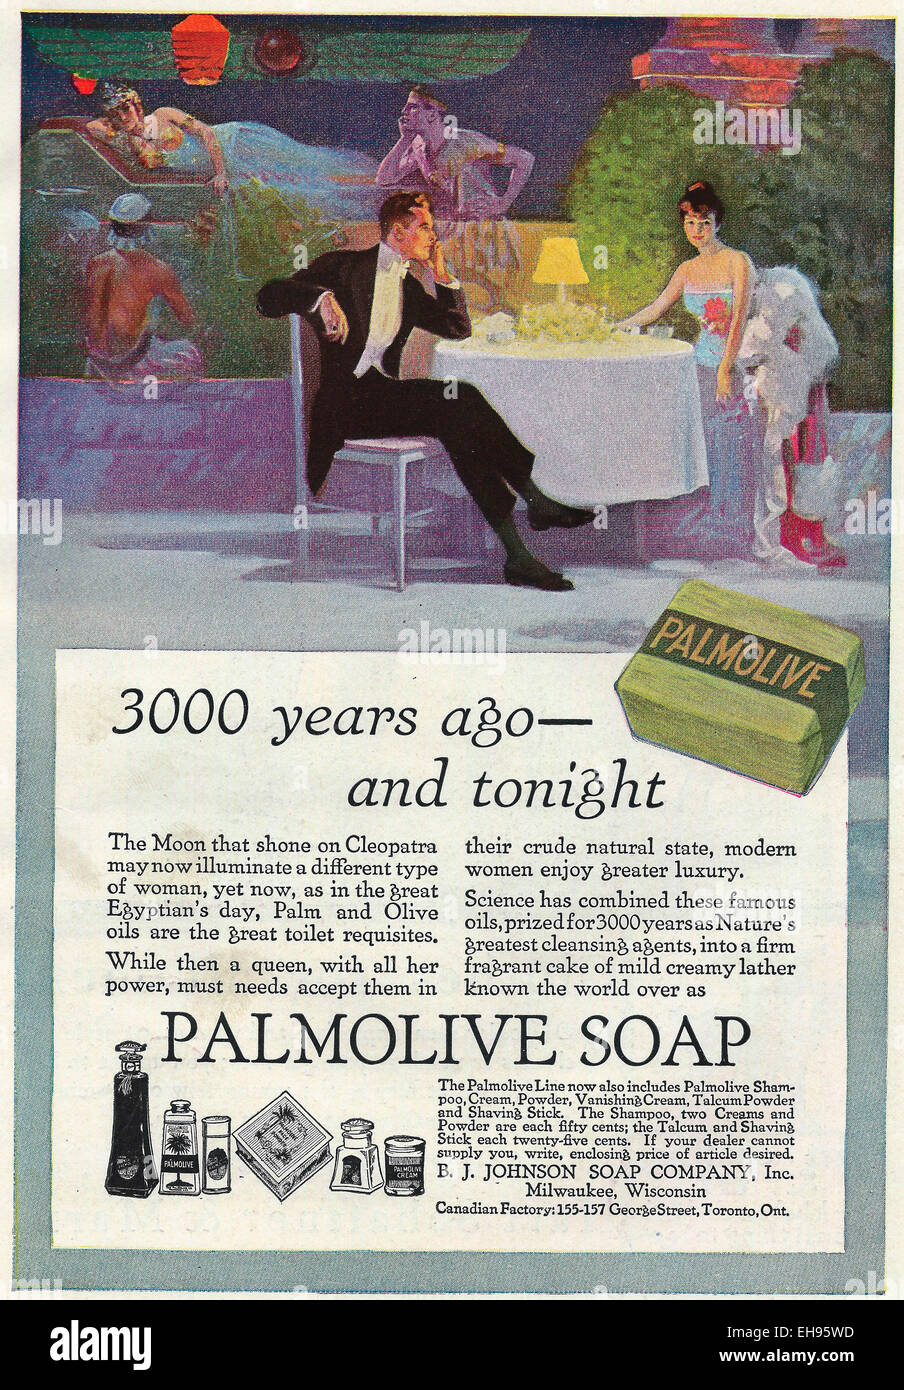 Advertisement for Palmolive Soap, 1916 - Stock Image